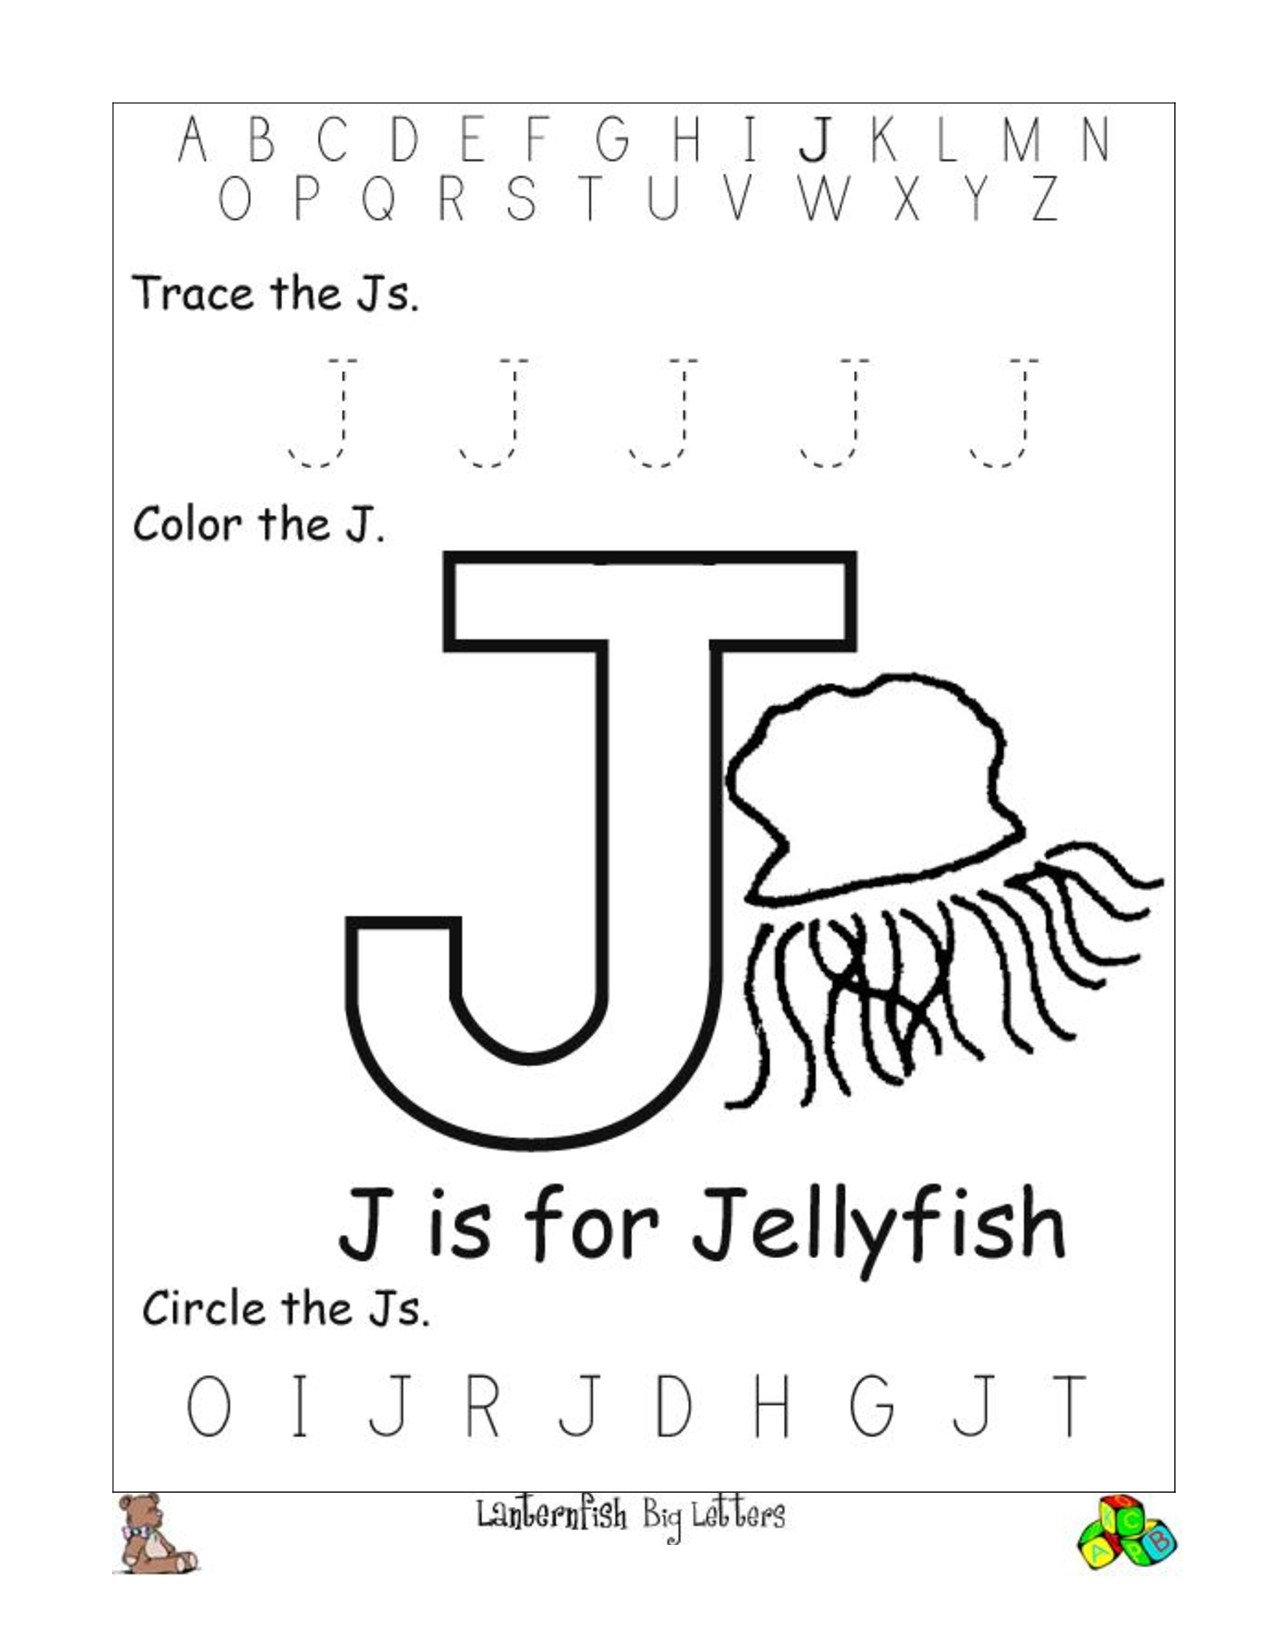 Printable Letter J Worksheets For Kindergarten | Loving for J Letter Worksheets